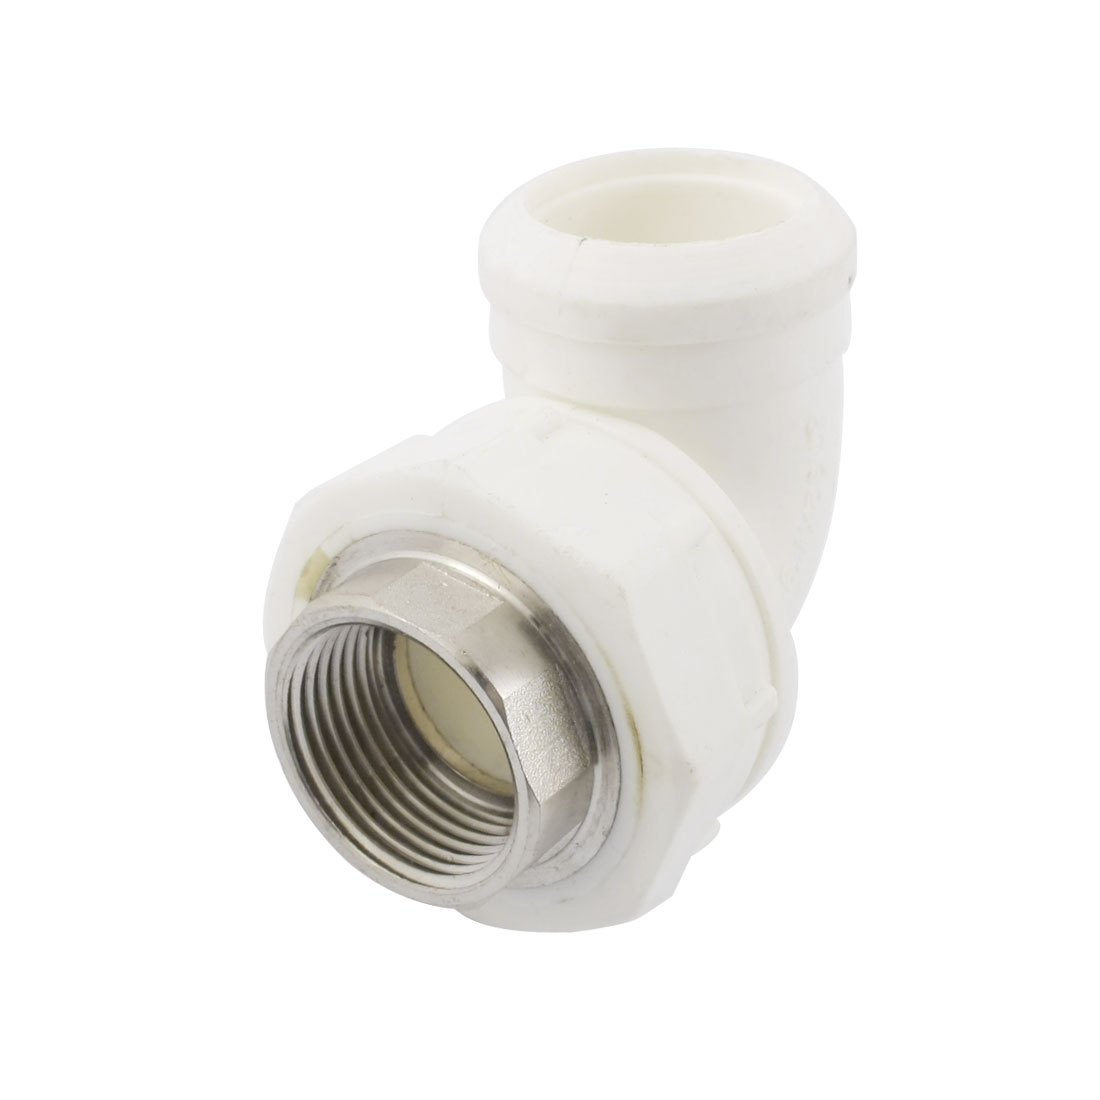 PPR 2-Way 32mm to 1PT Female Water Pipe Hose Tube Elbow Coupler Connector